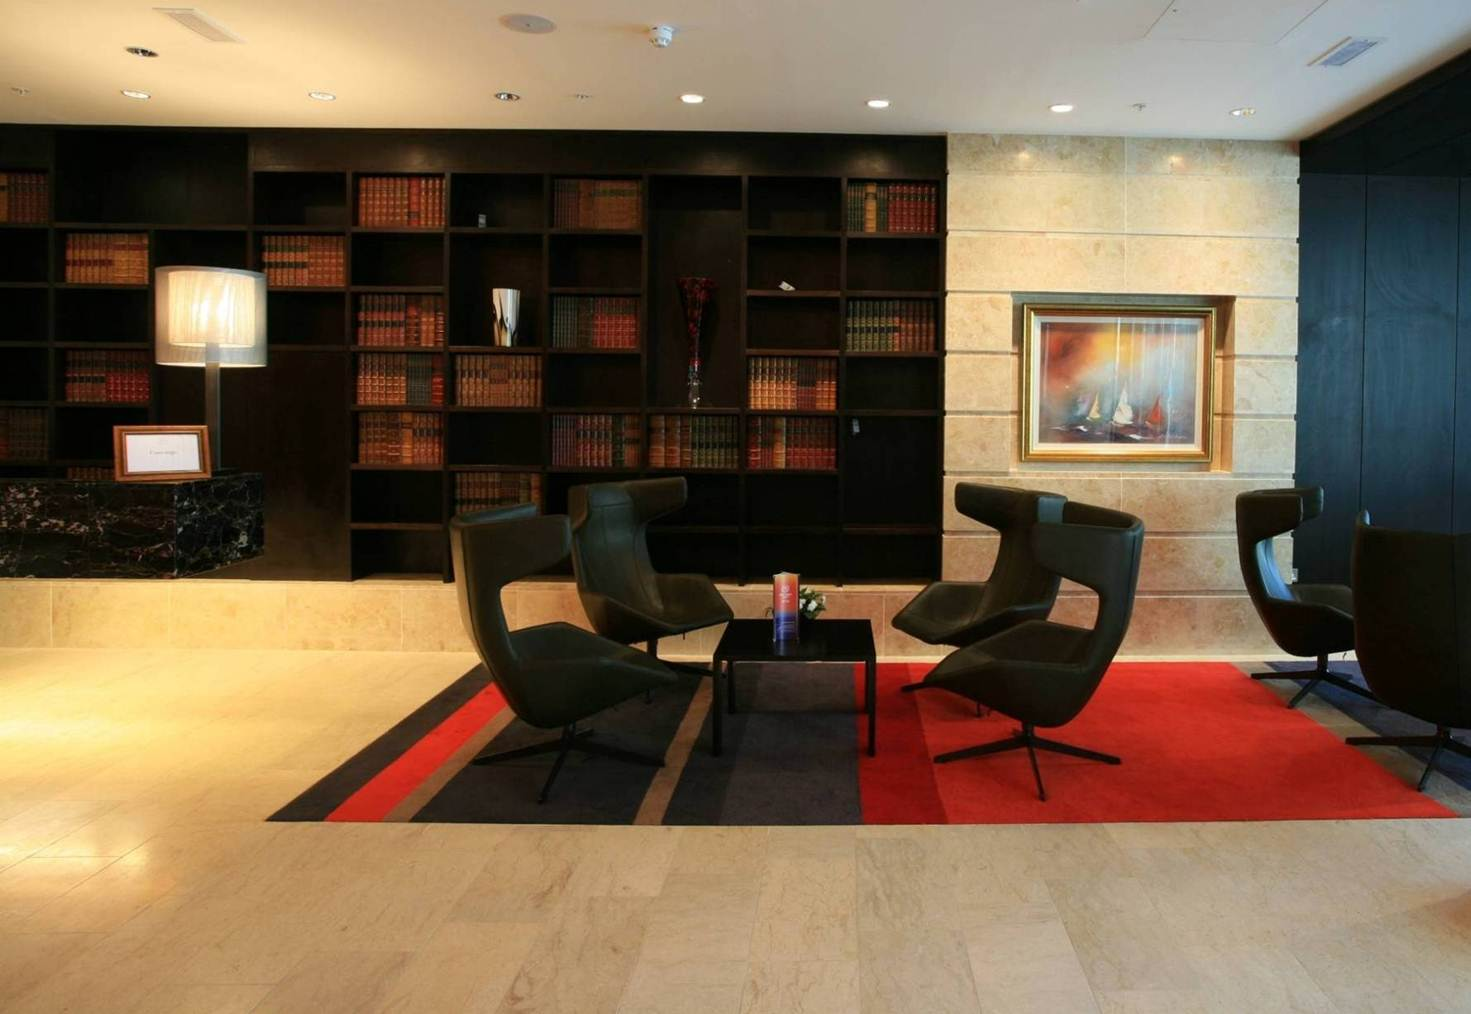 Hotel Fitout-Sheraton Athlone-Foyer Library